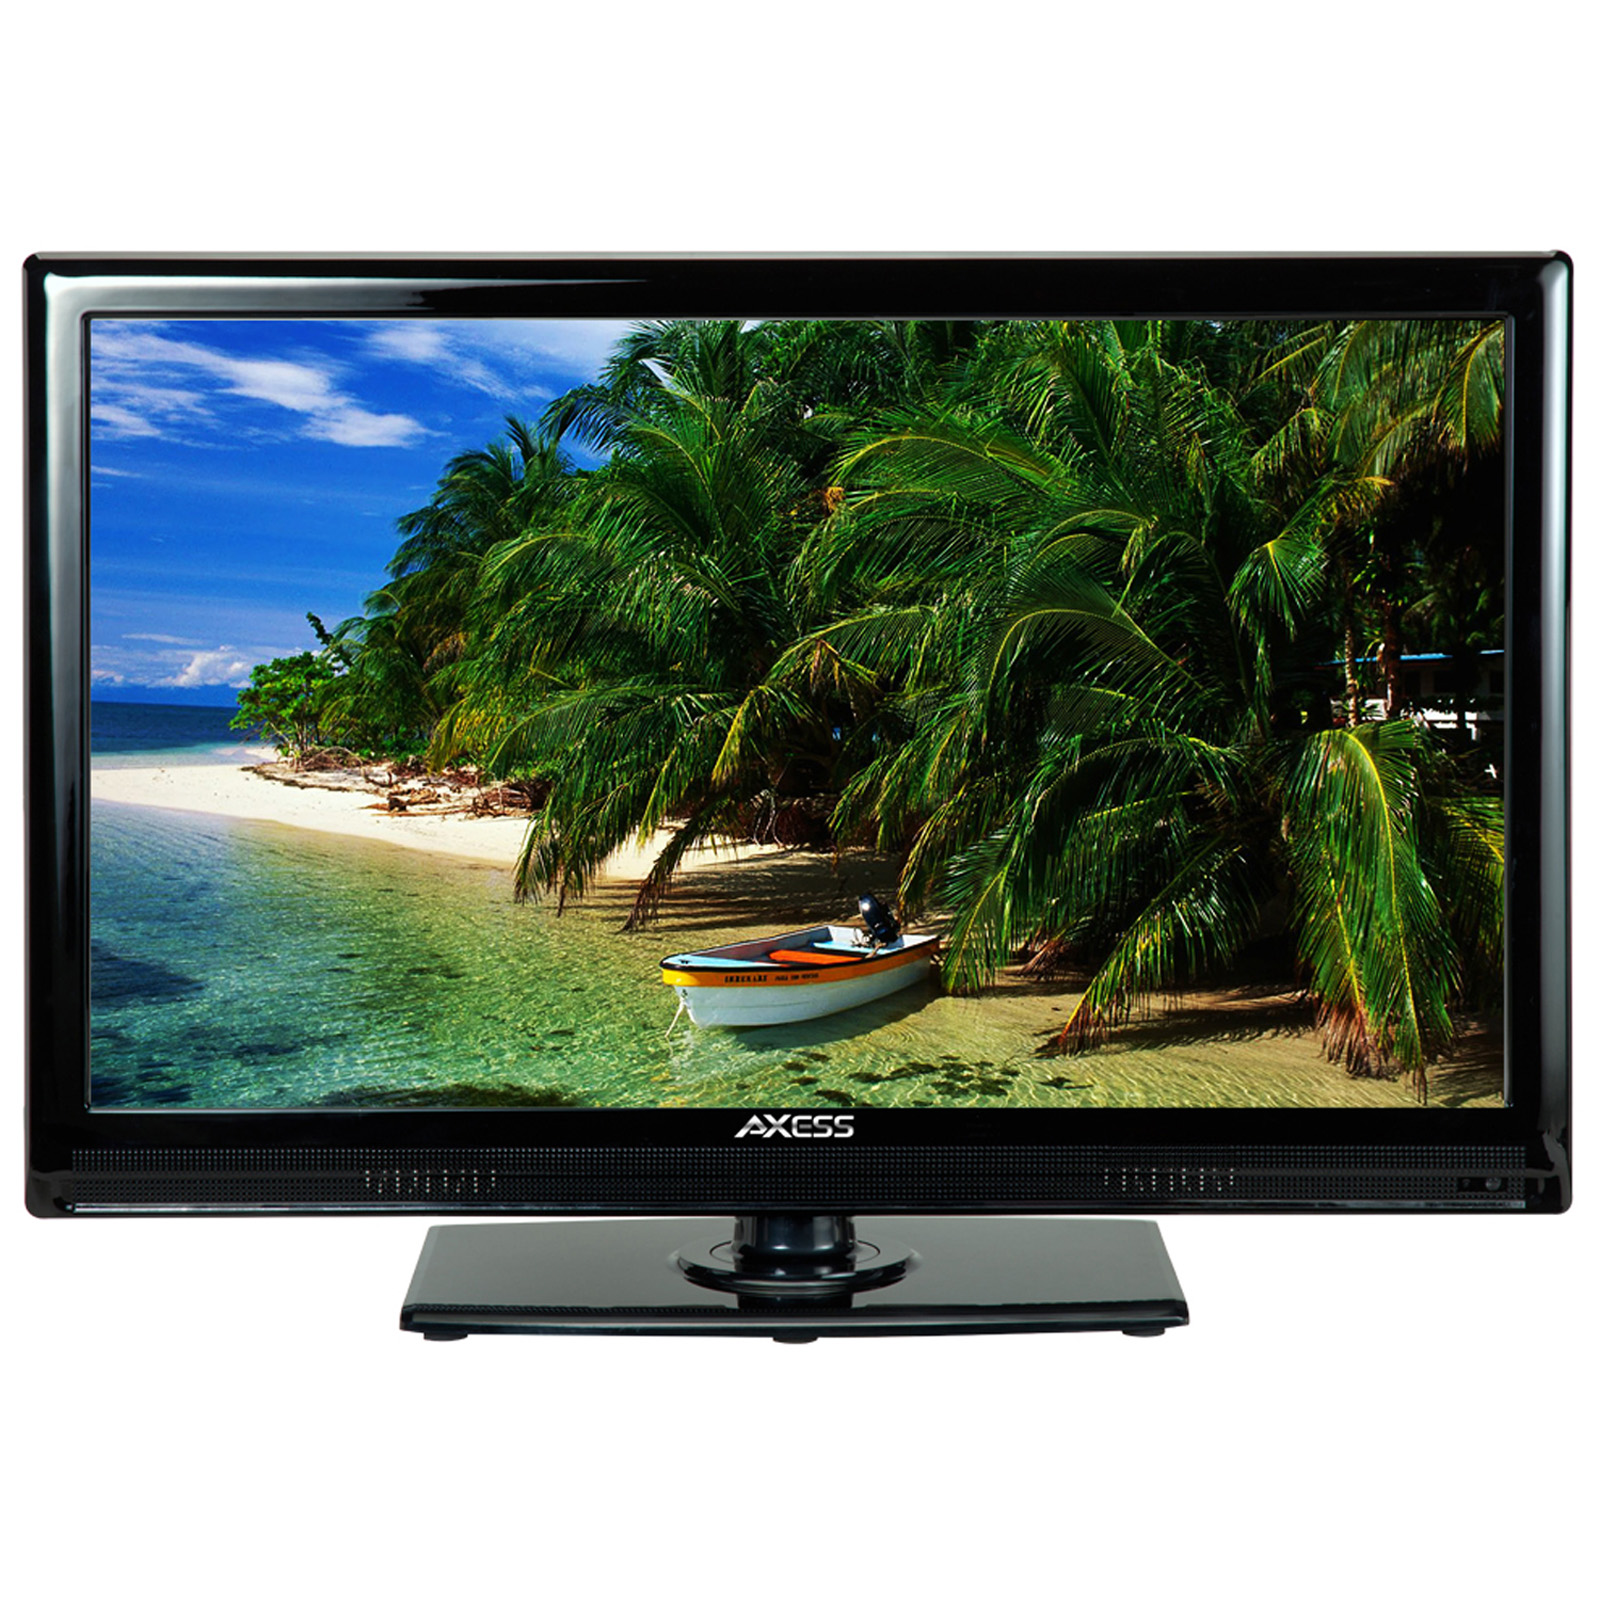 "19"" LED AC/DC Full HD TV with HDMI and USB (TV1701-19)"